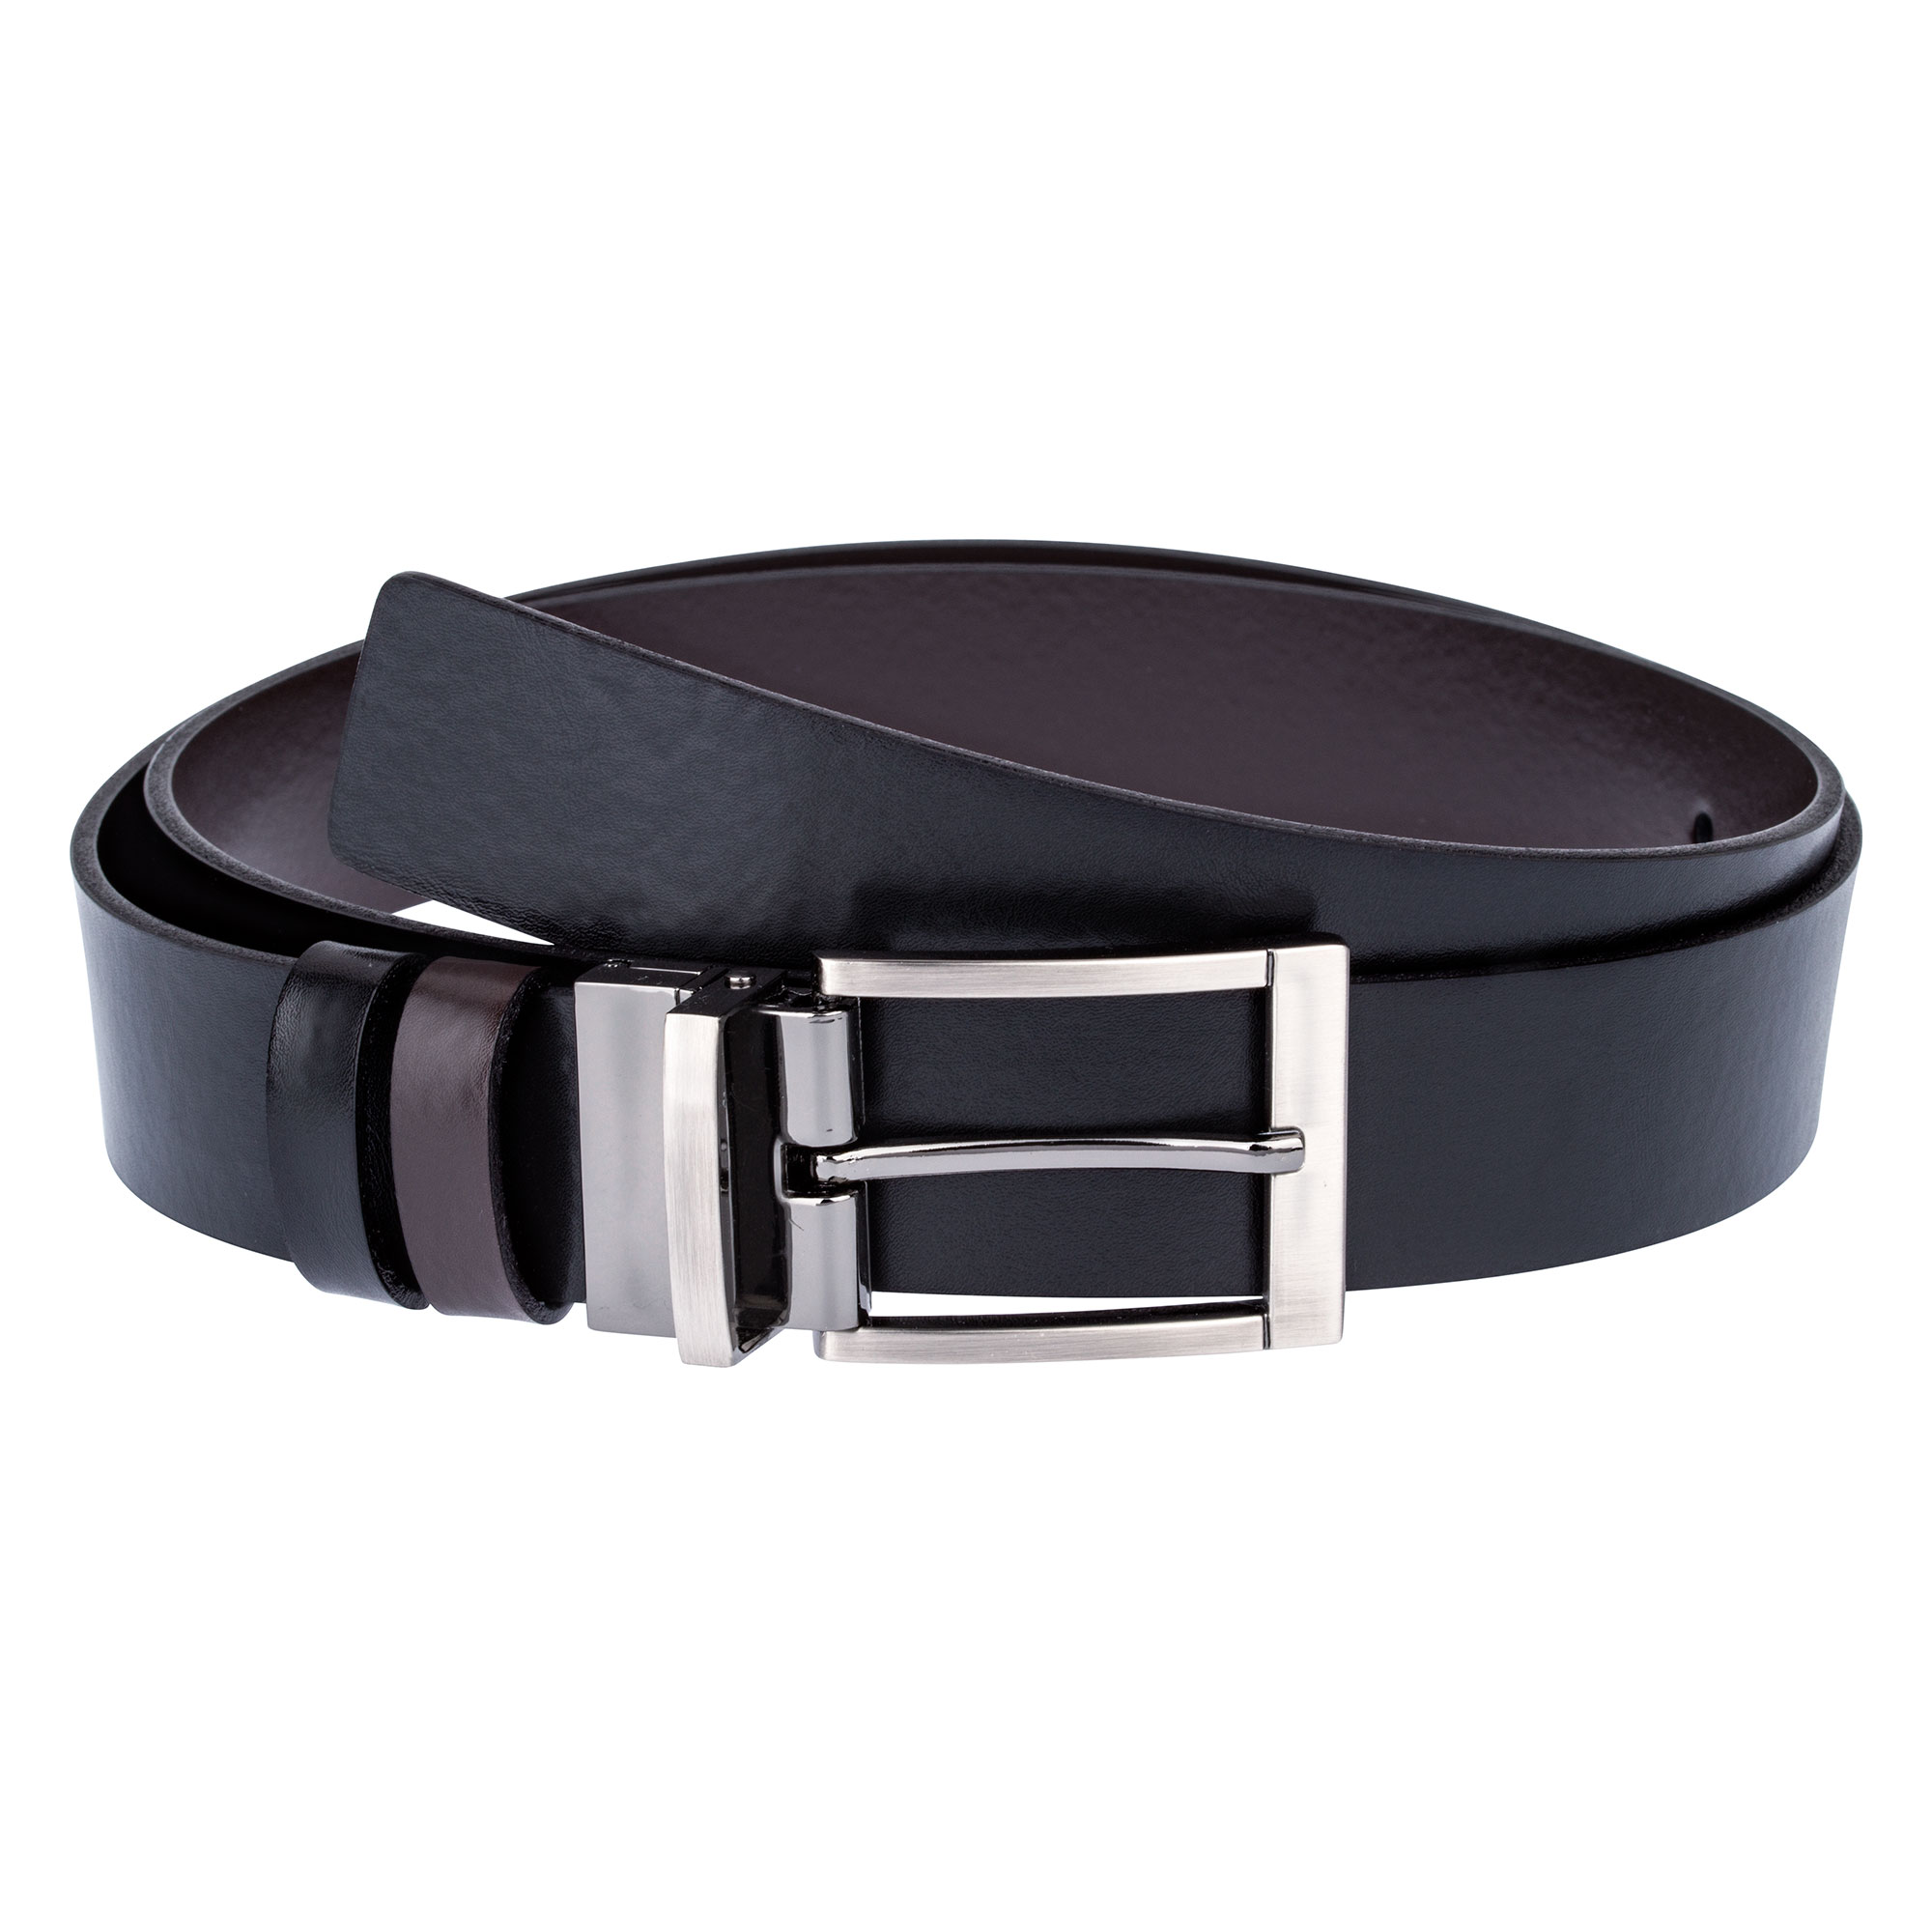 Find great deals on eBay for mens reversible leather belt. Shop with confidence.